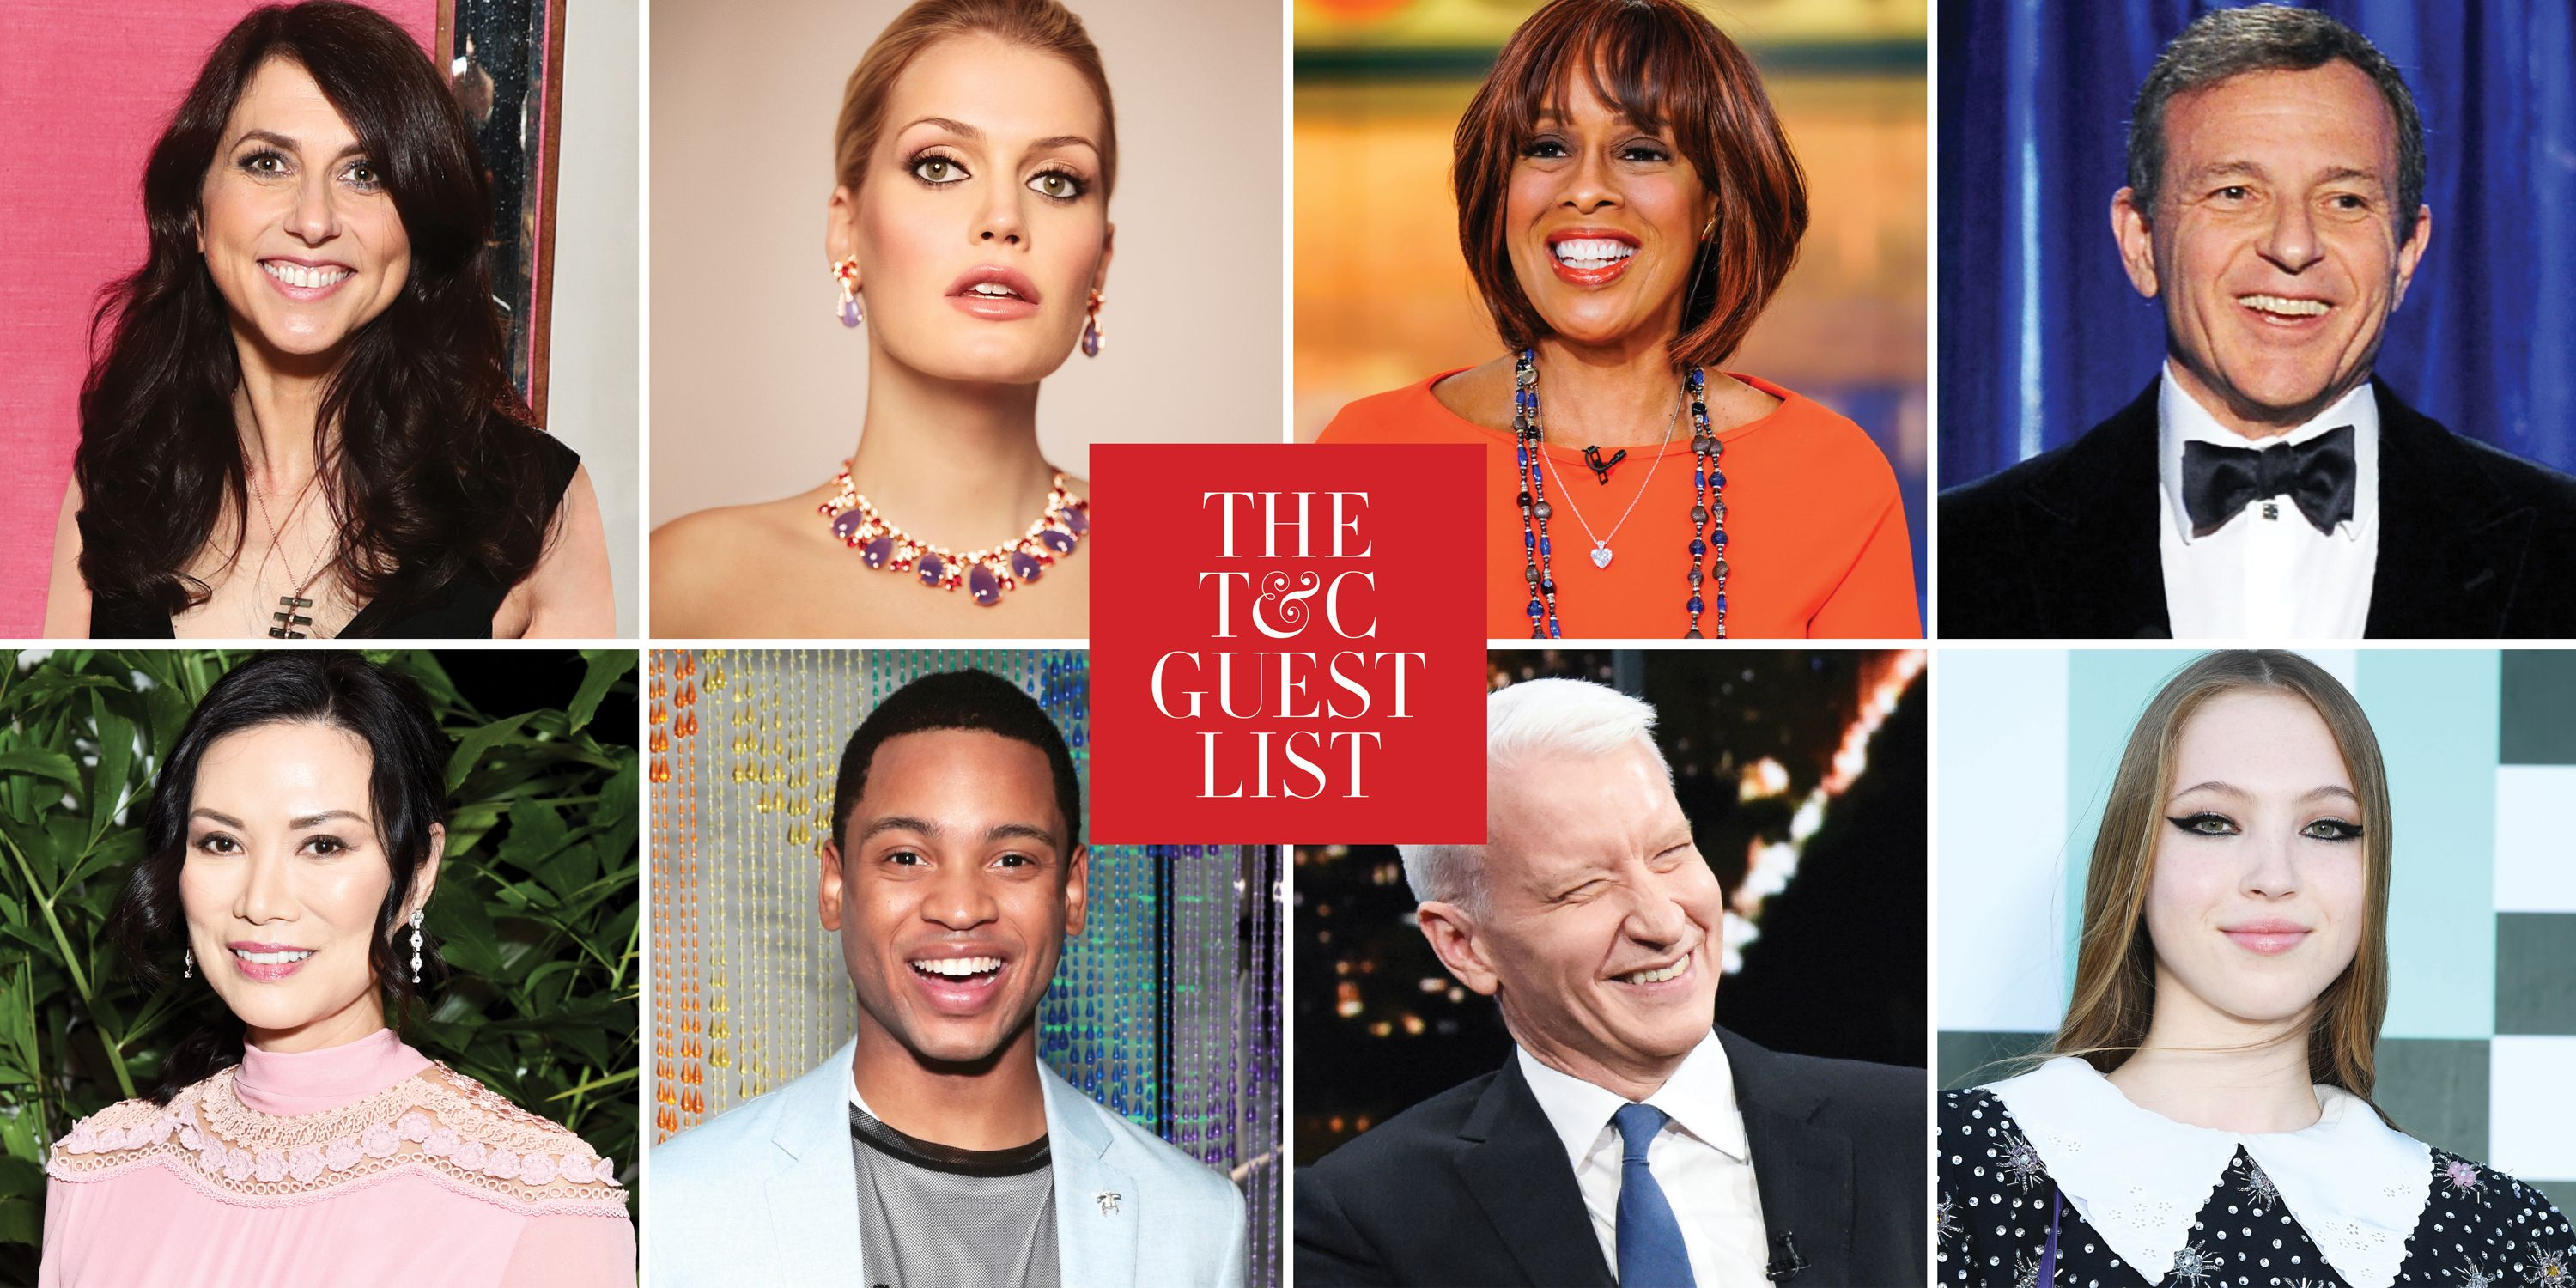 The Ultimate T&C Guest List